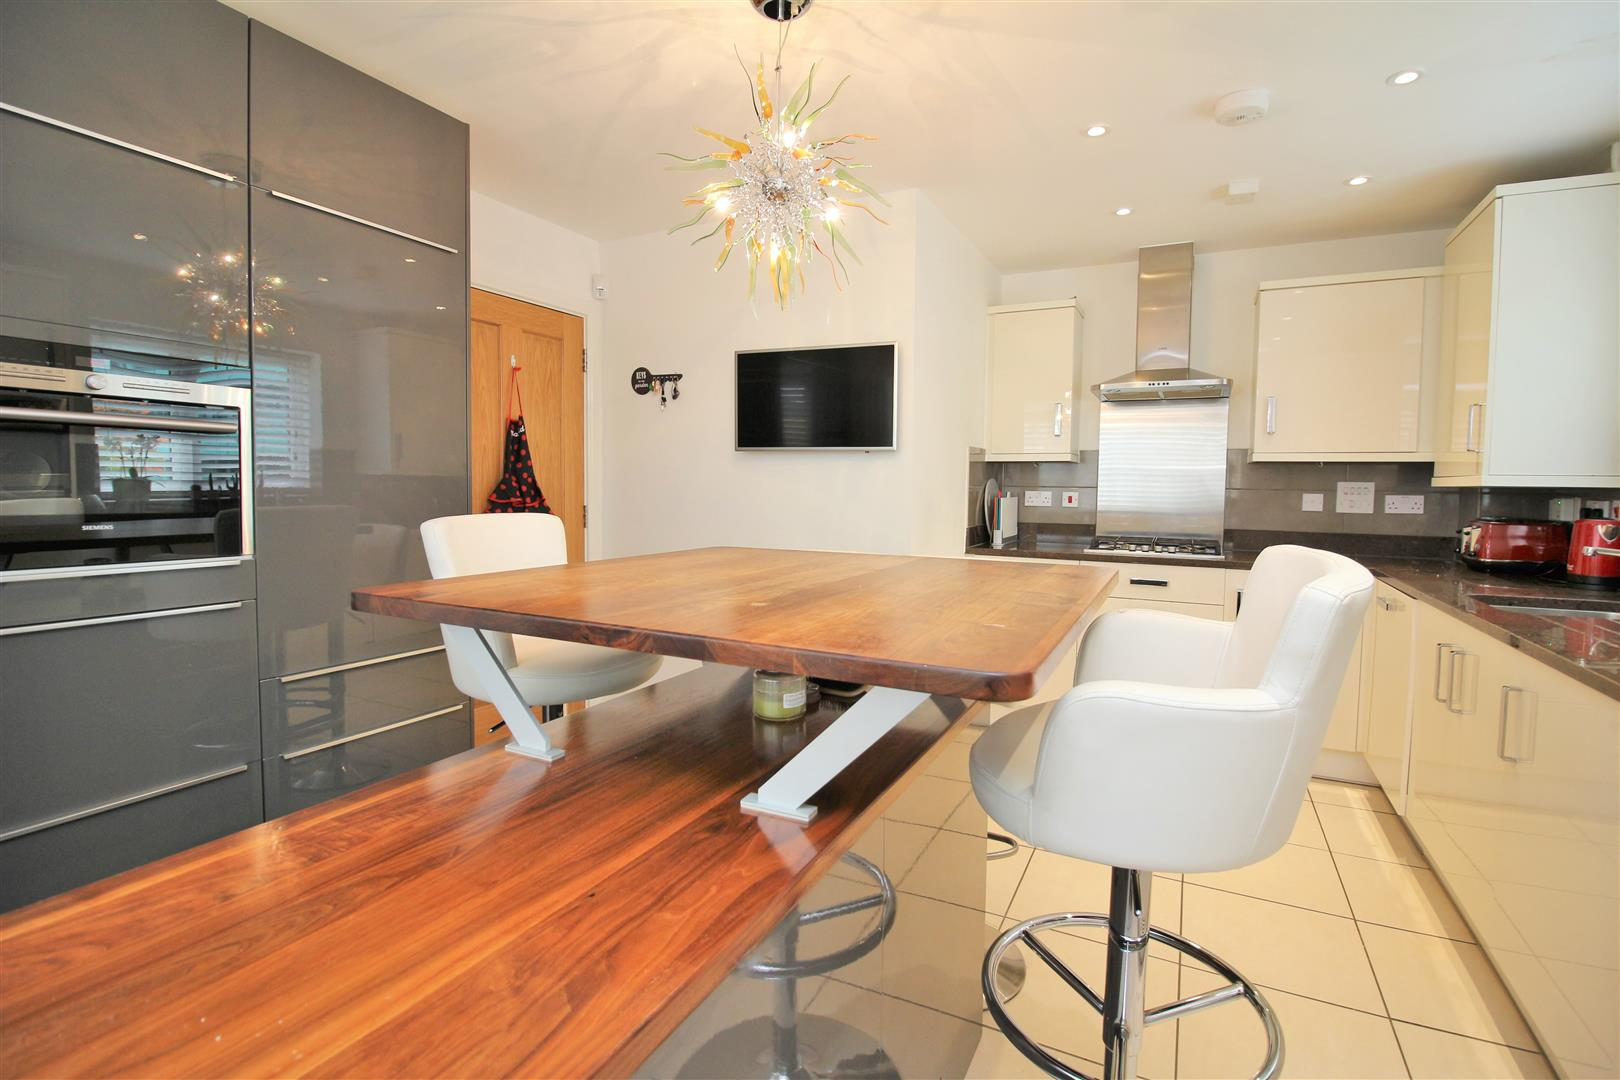 4 bed to rent in Leavesden - (Property Image 5)